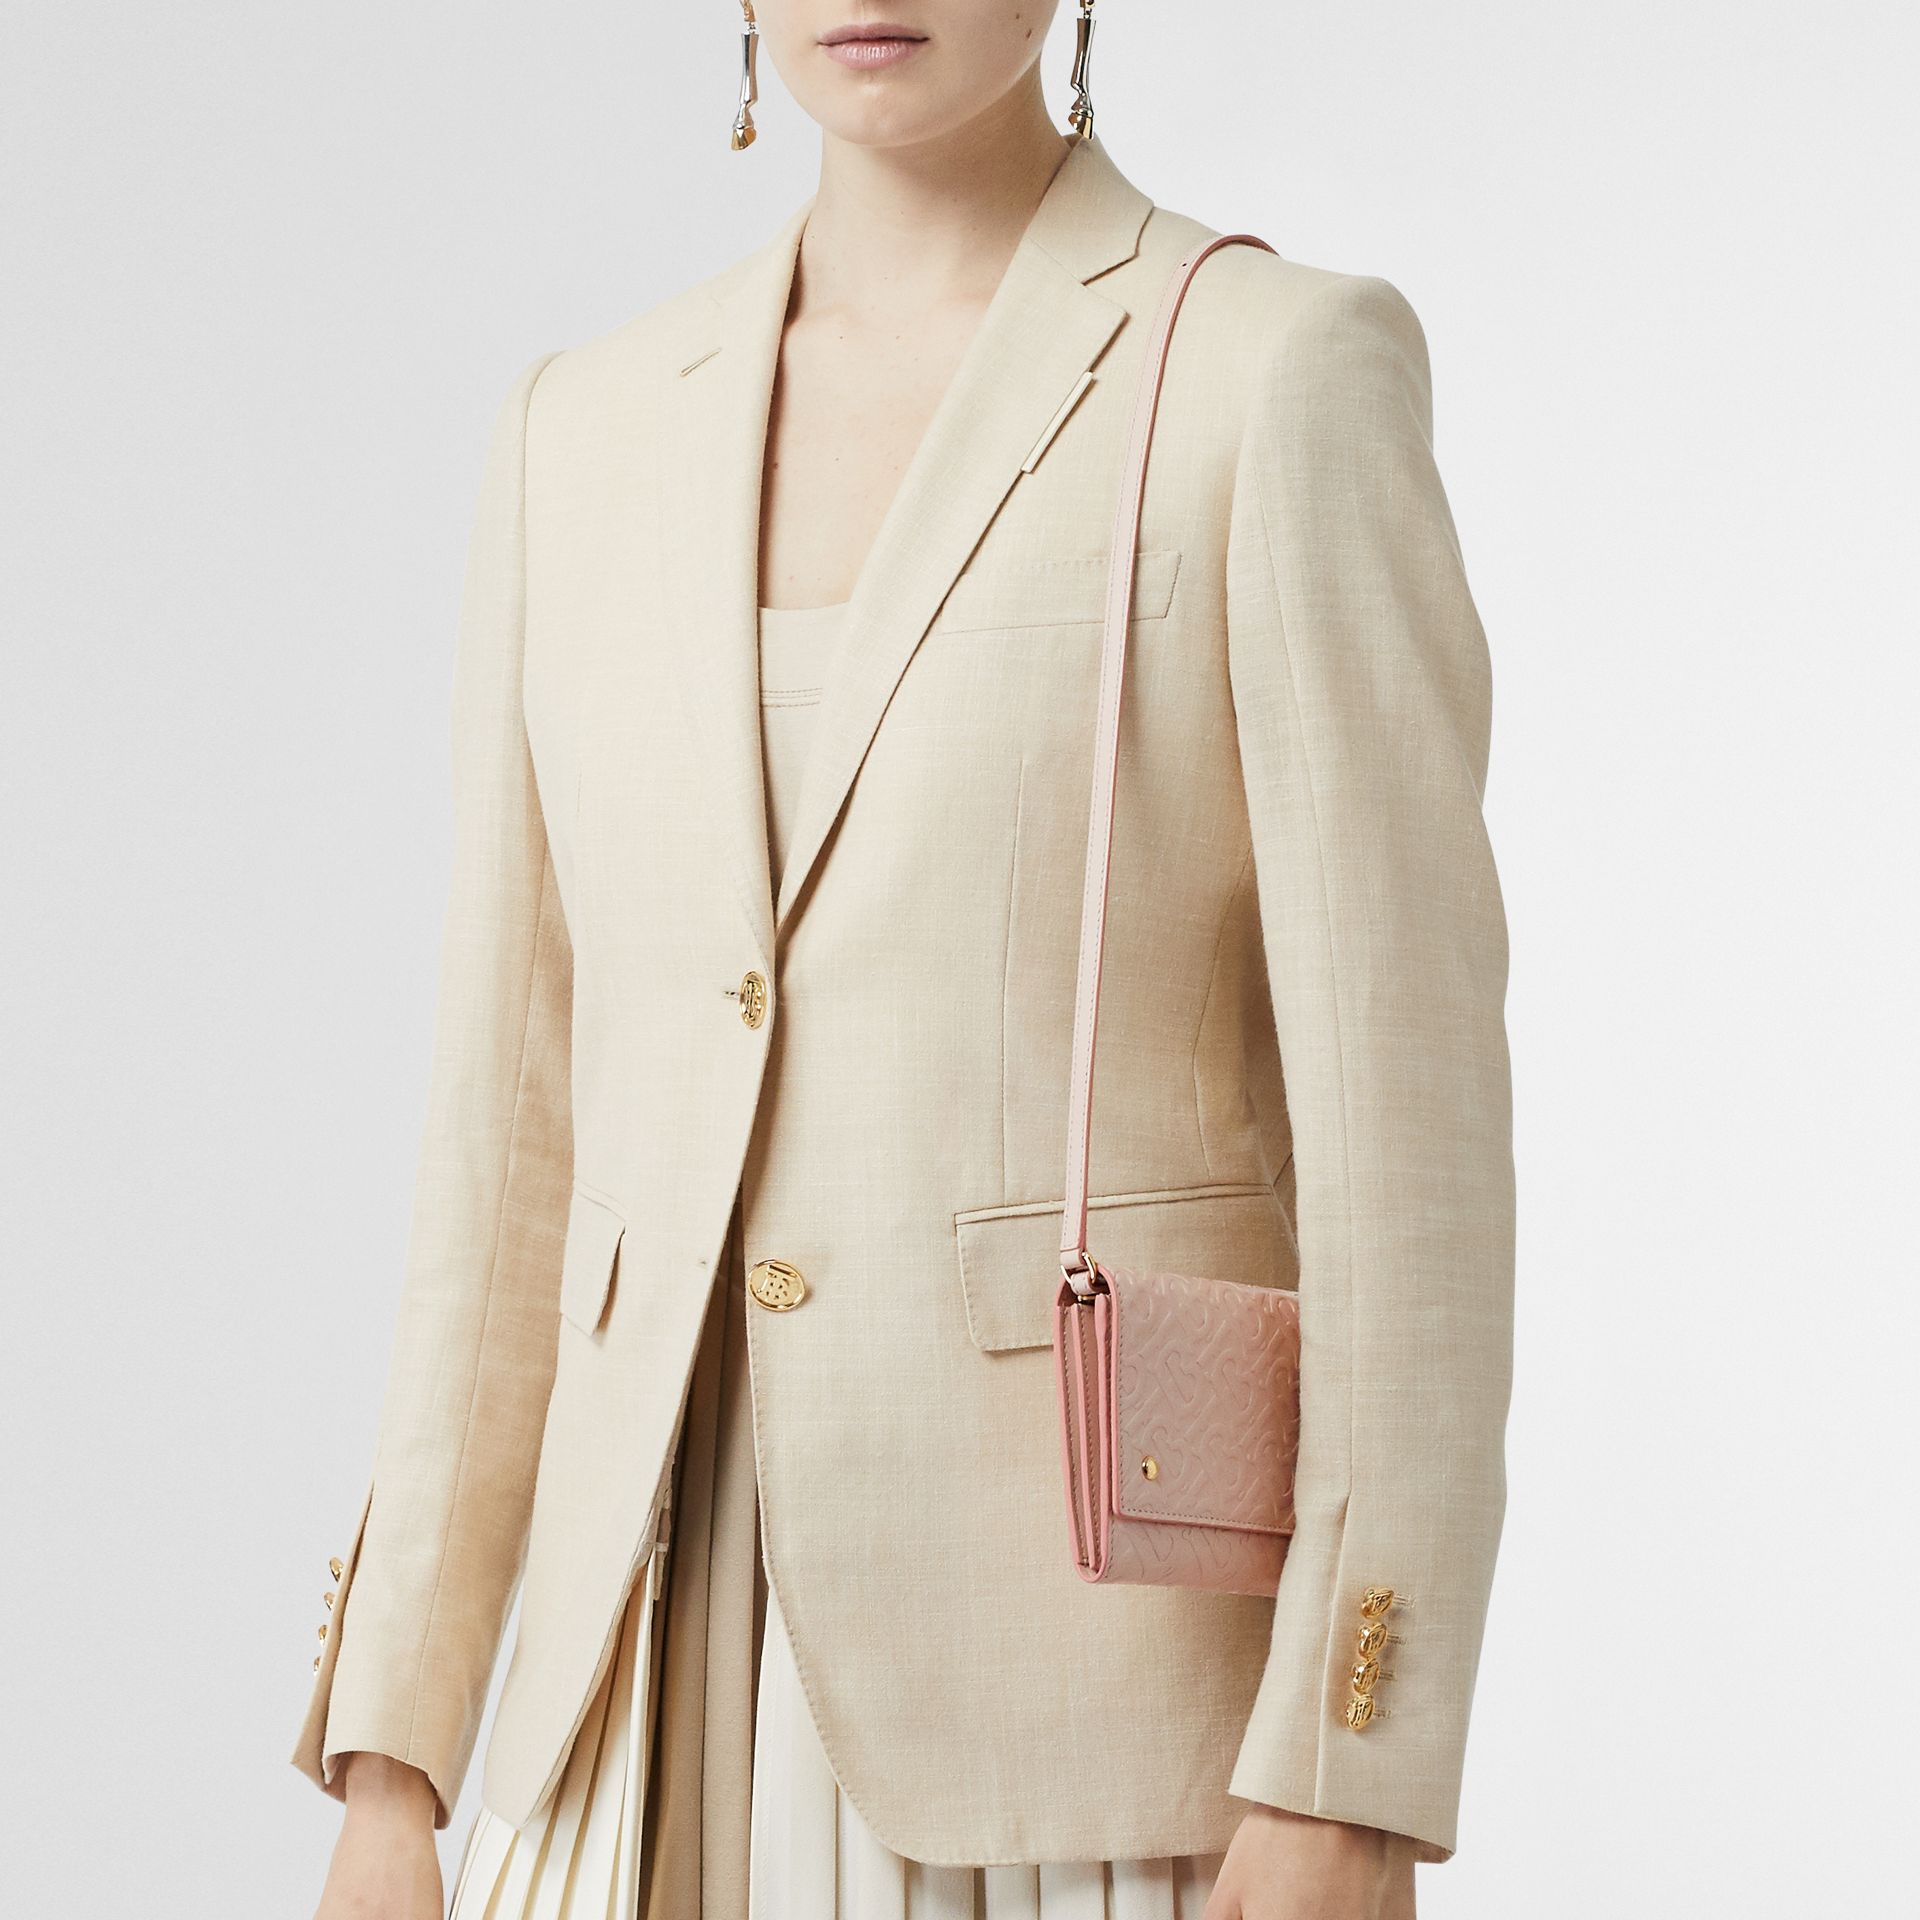 Portefeuille en cuir Monogram et sangle amovible (Beige Rose) - Femme | Burberry - photo de la galerie 2